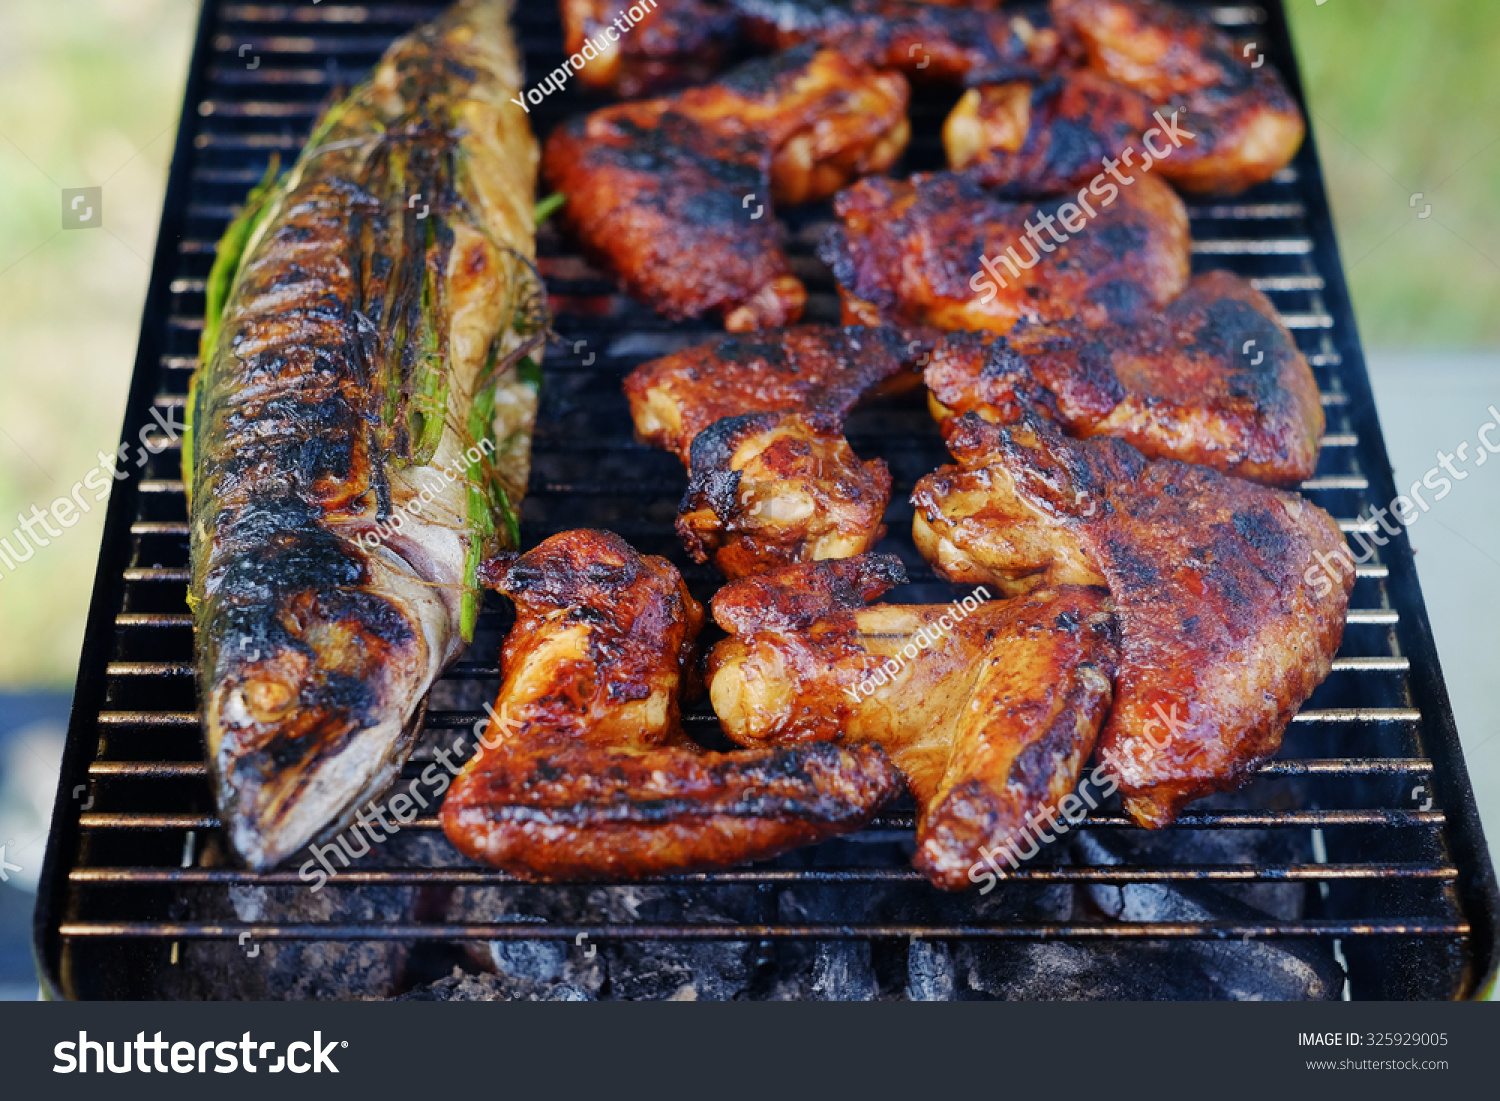 Grilled fish and chicken wings on campfire food preparing for Fish and wings